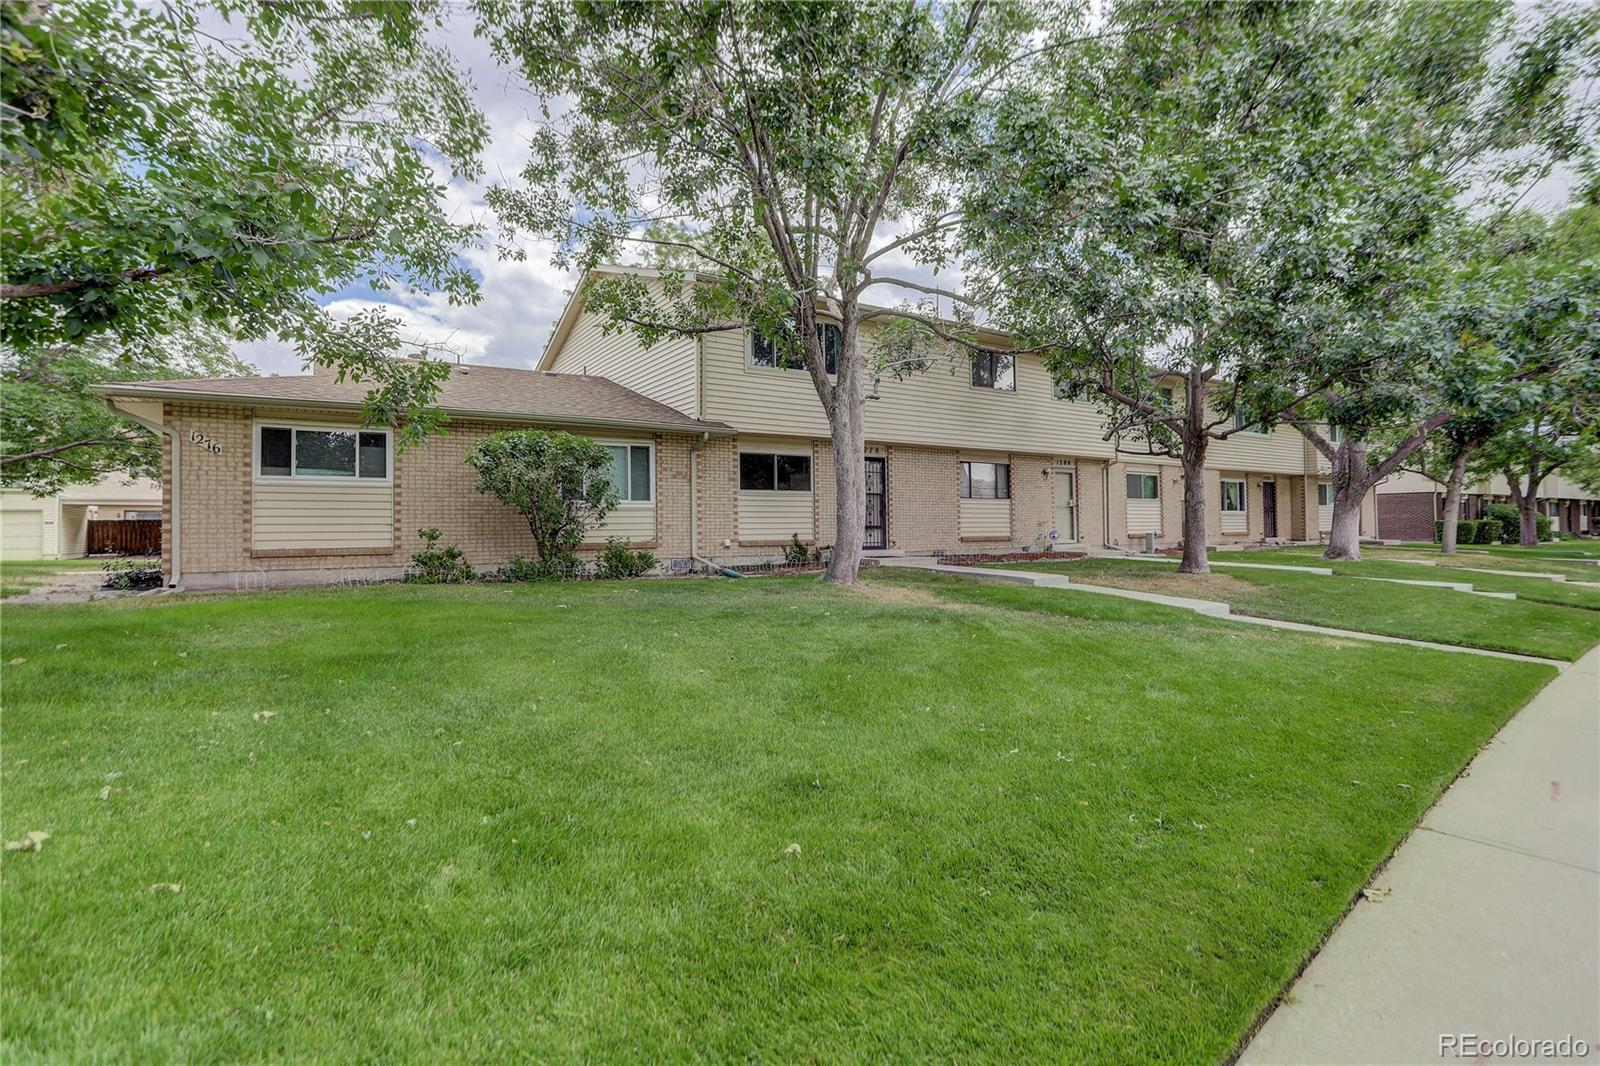 MLS# 1821223 - 1278 S Troy Street, Aurora, CO 80012